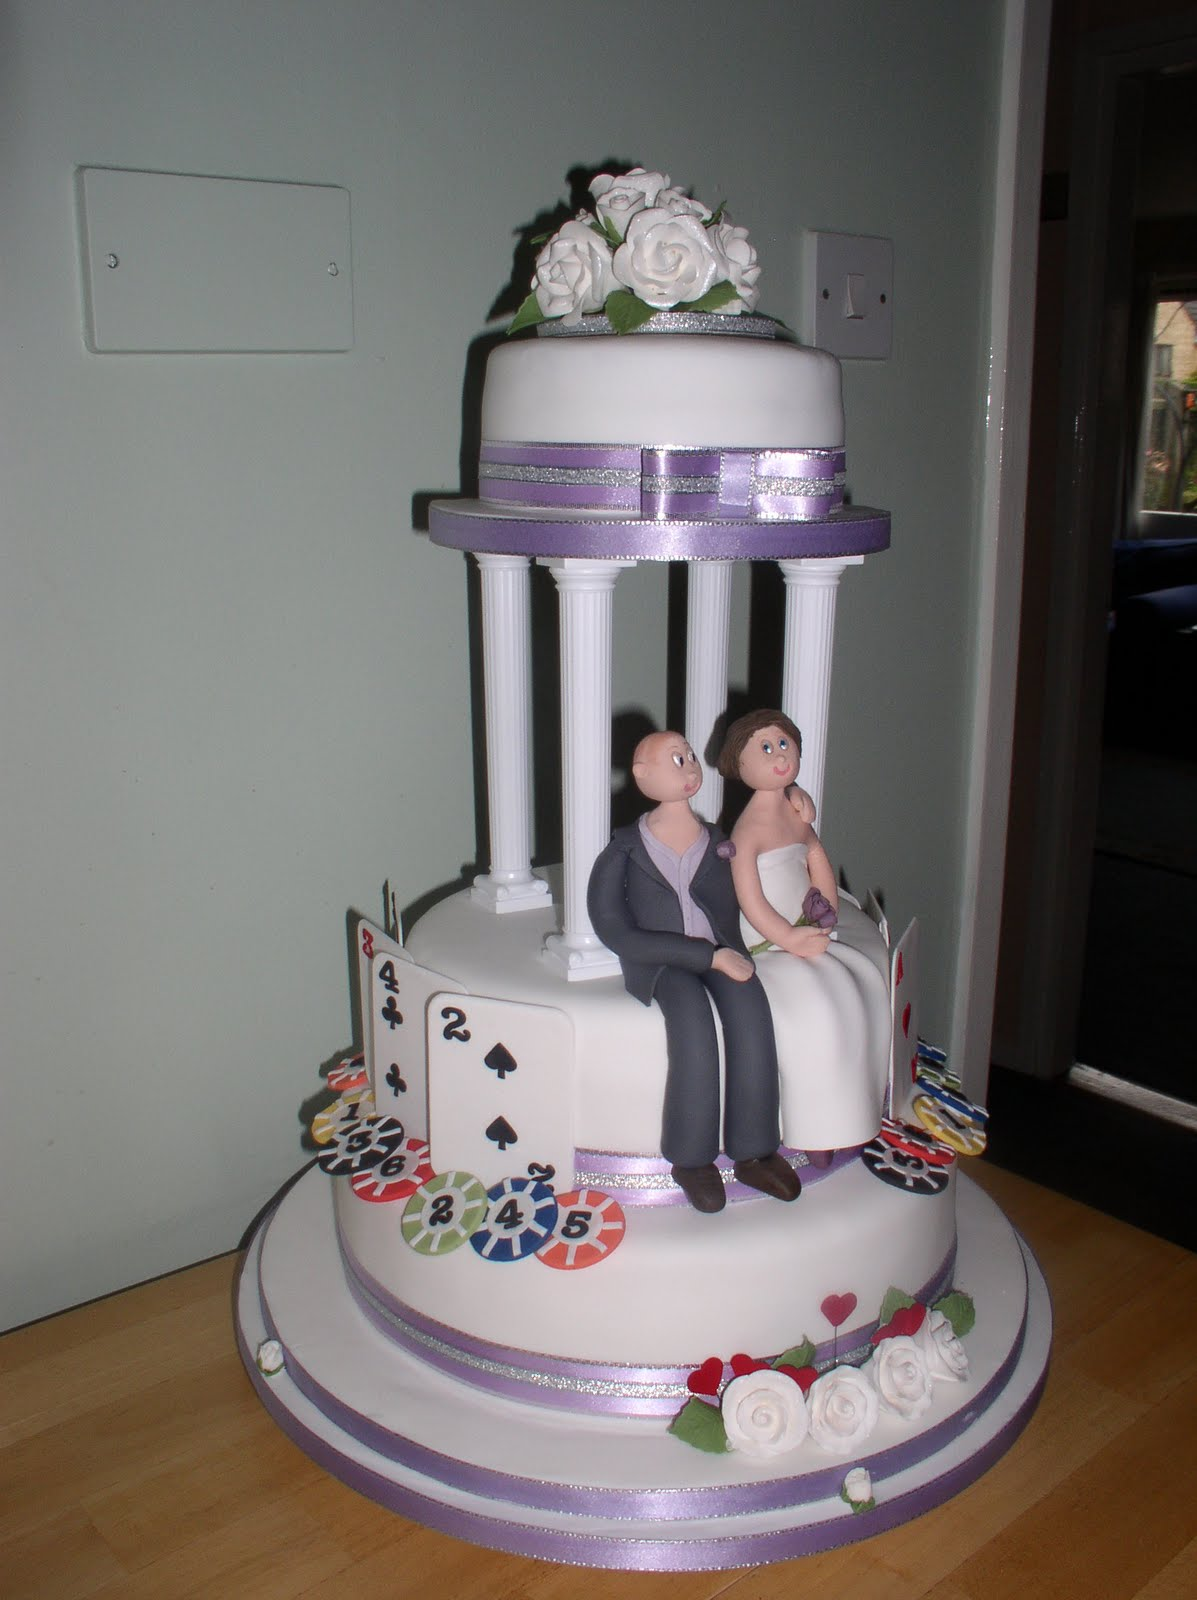 cakesbysarah vegas wedding cake. Black Bedroom Furniture Sets. Home Design Ideas